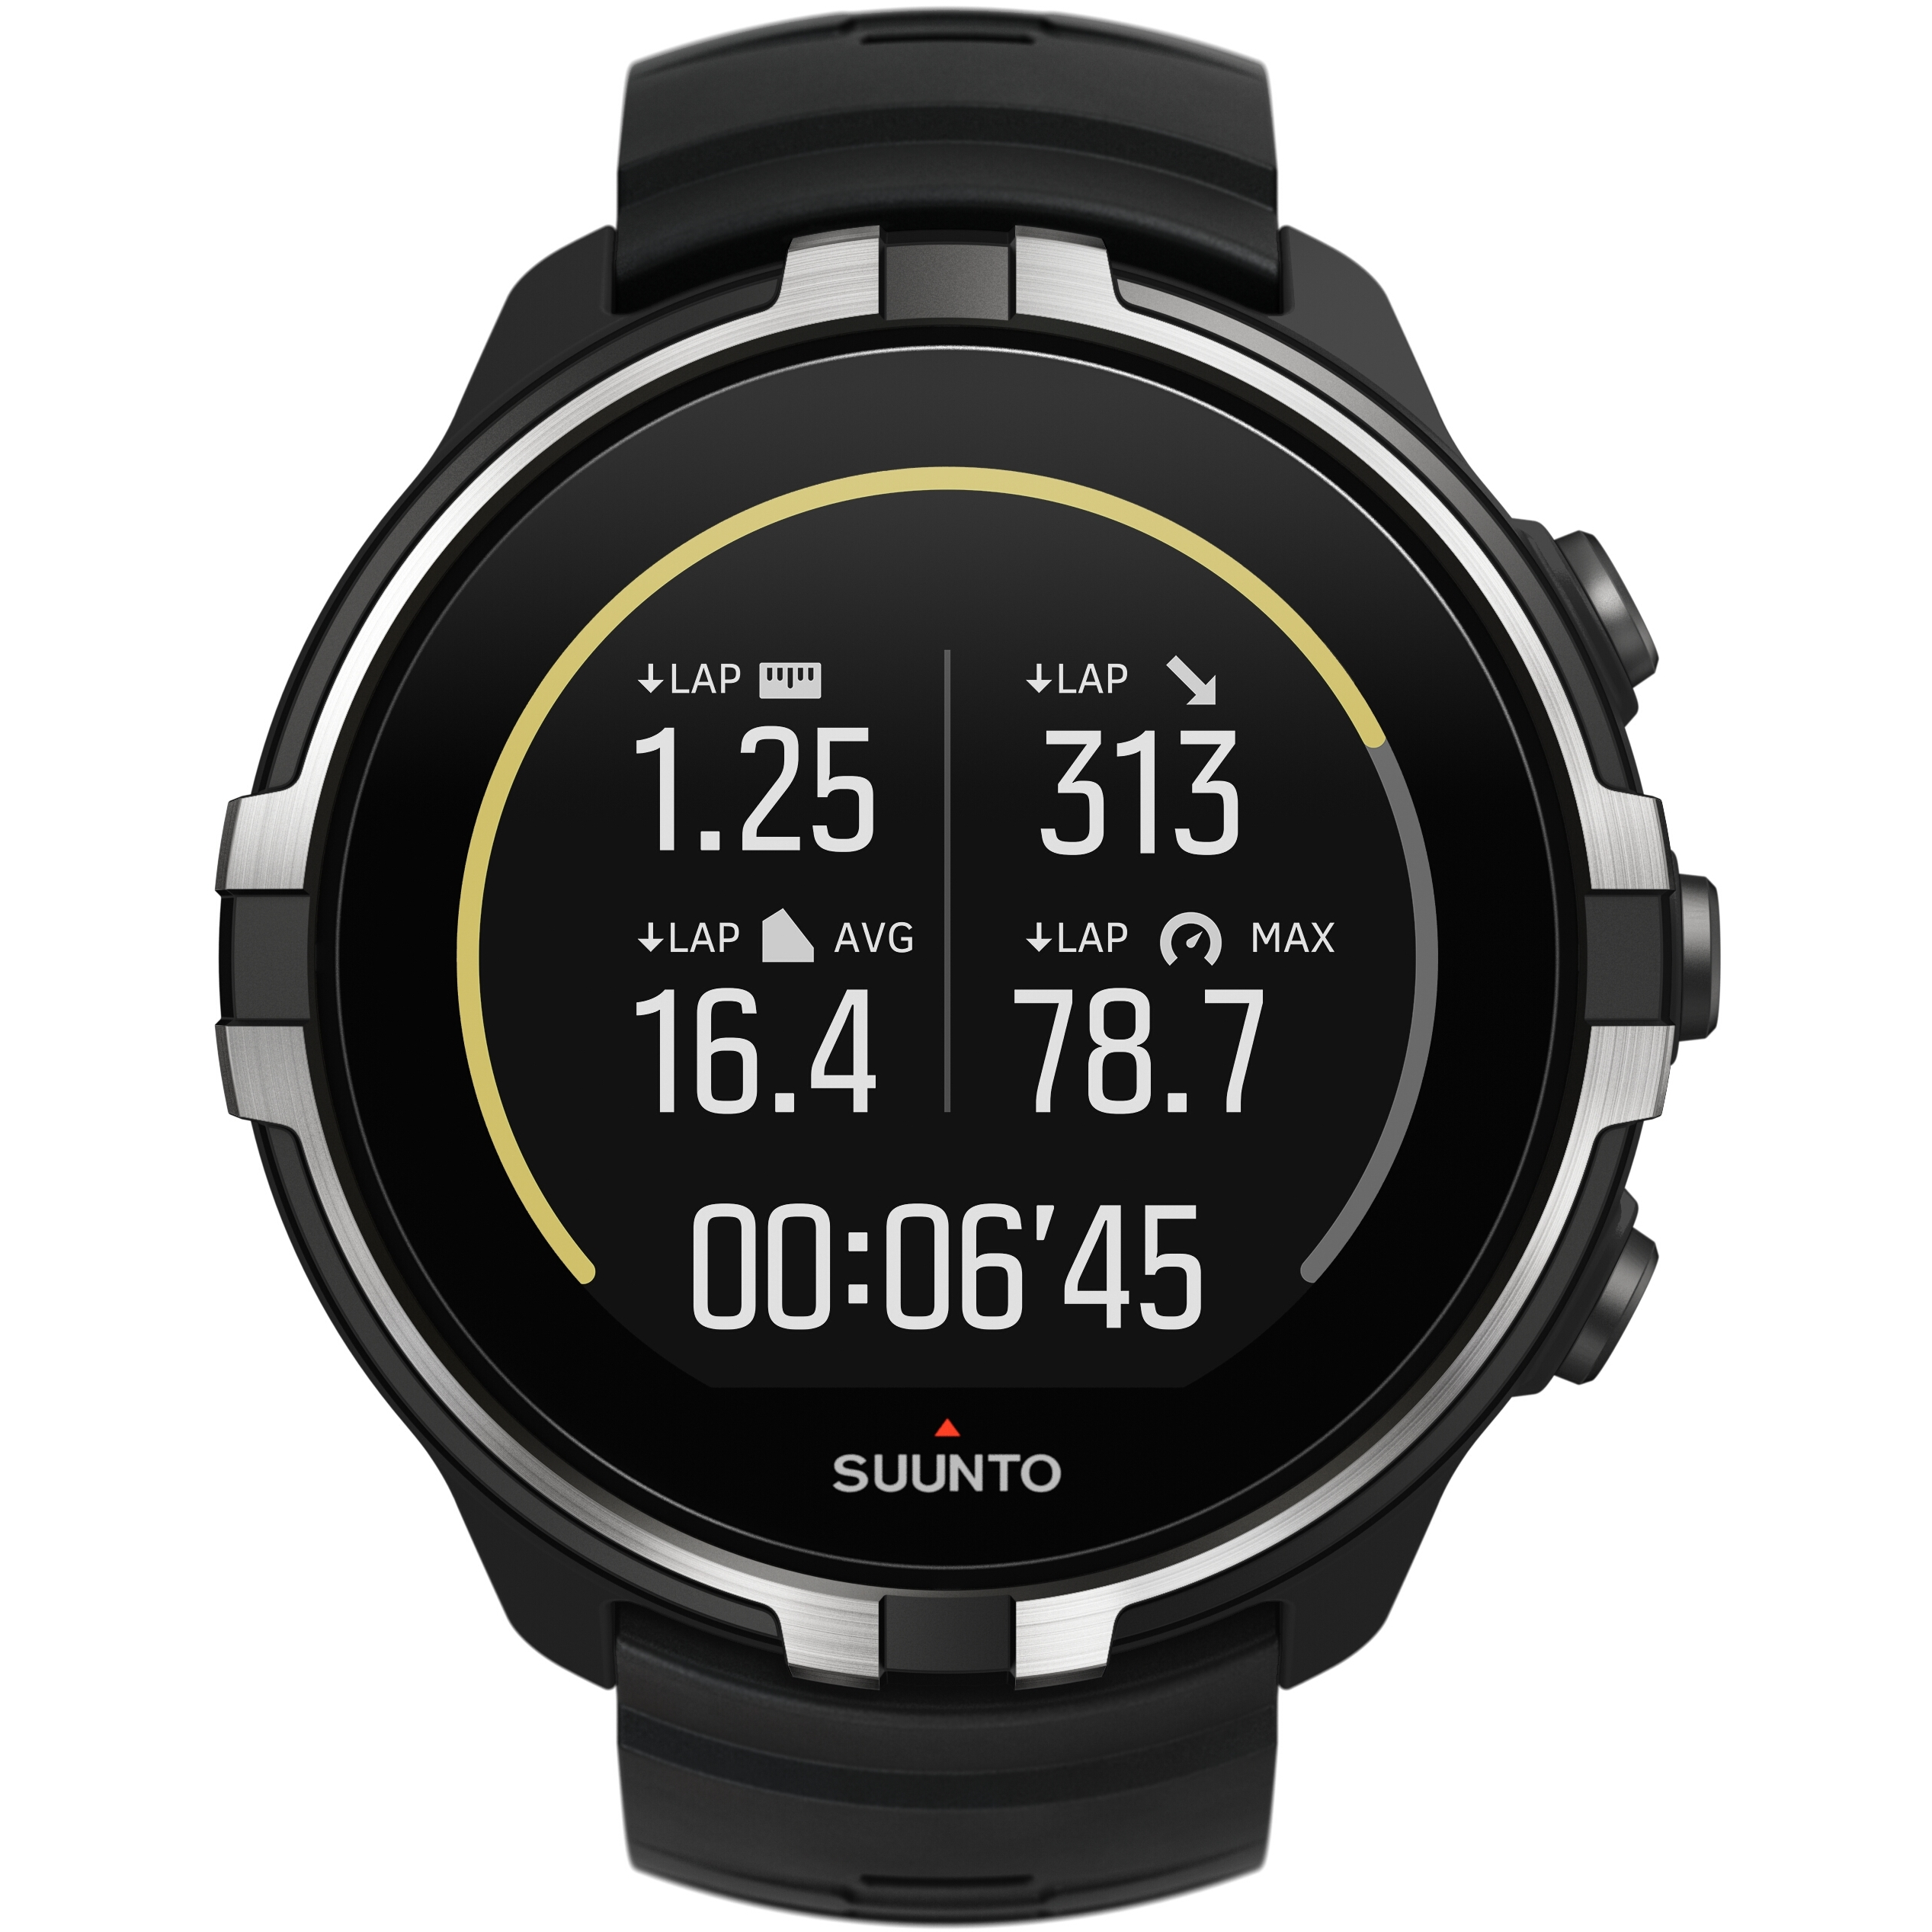 en liquid gps forerunner watch running unisex garmin watches product